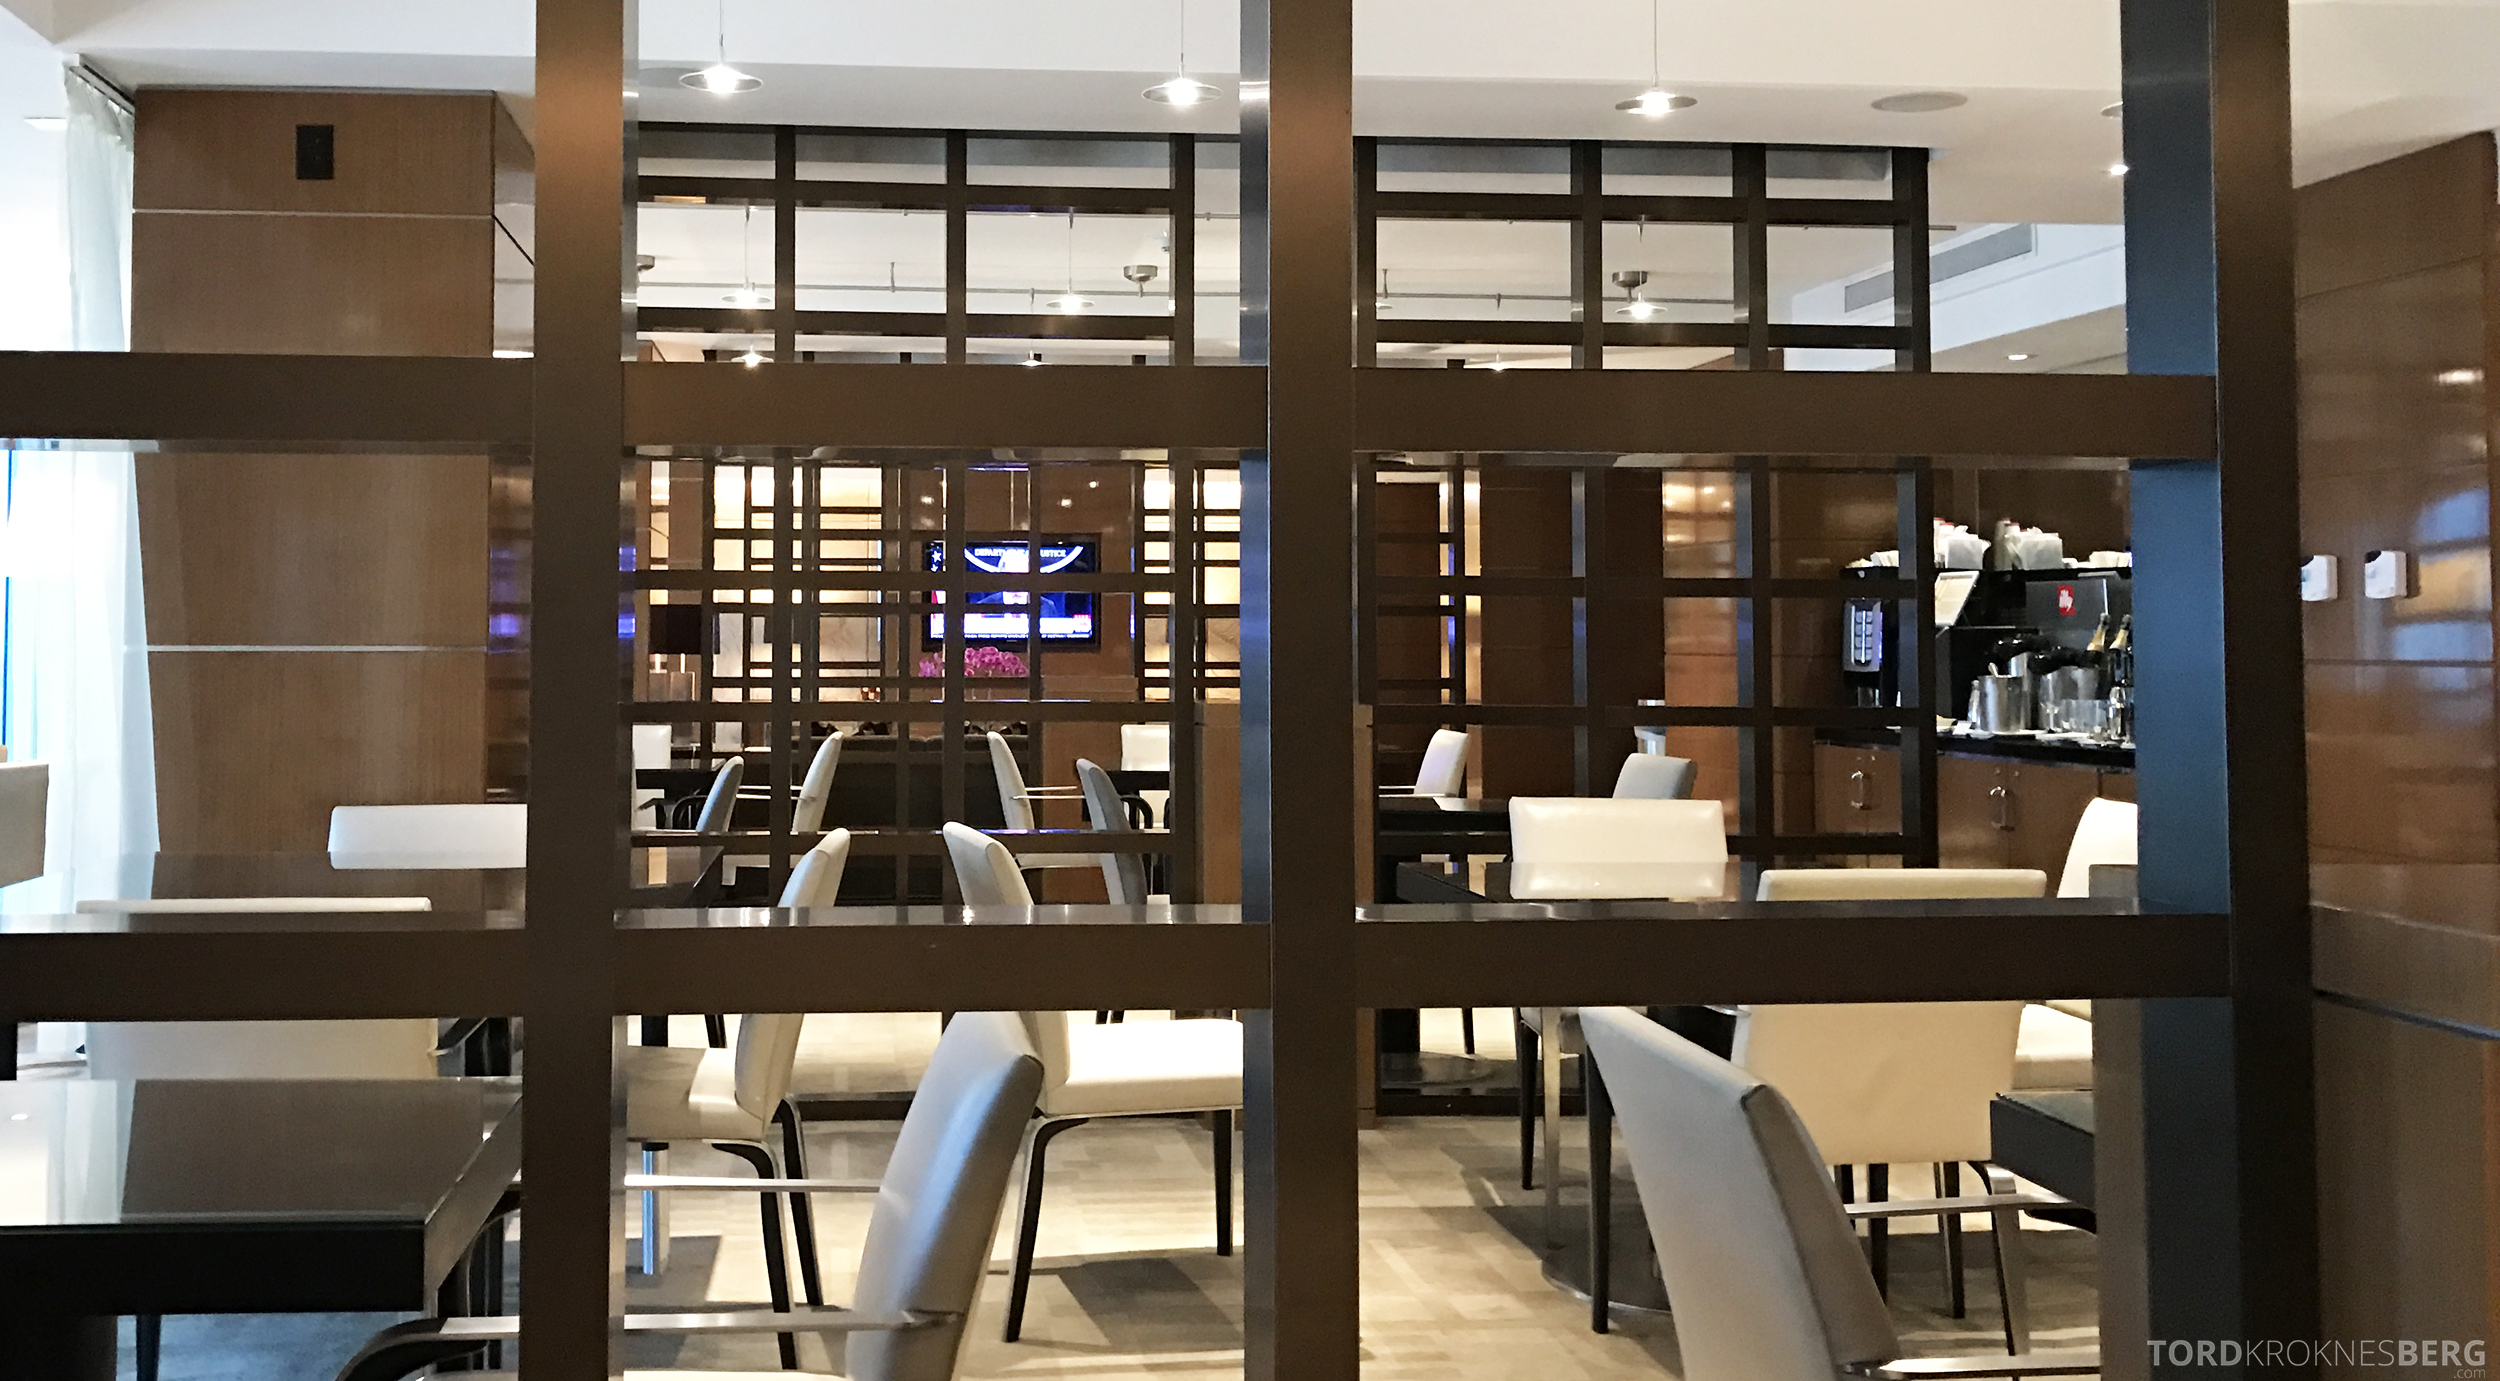 JW Marriott Marquis Miami Executive Lounge omgivelser